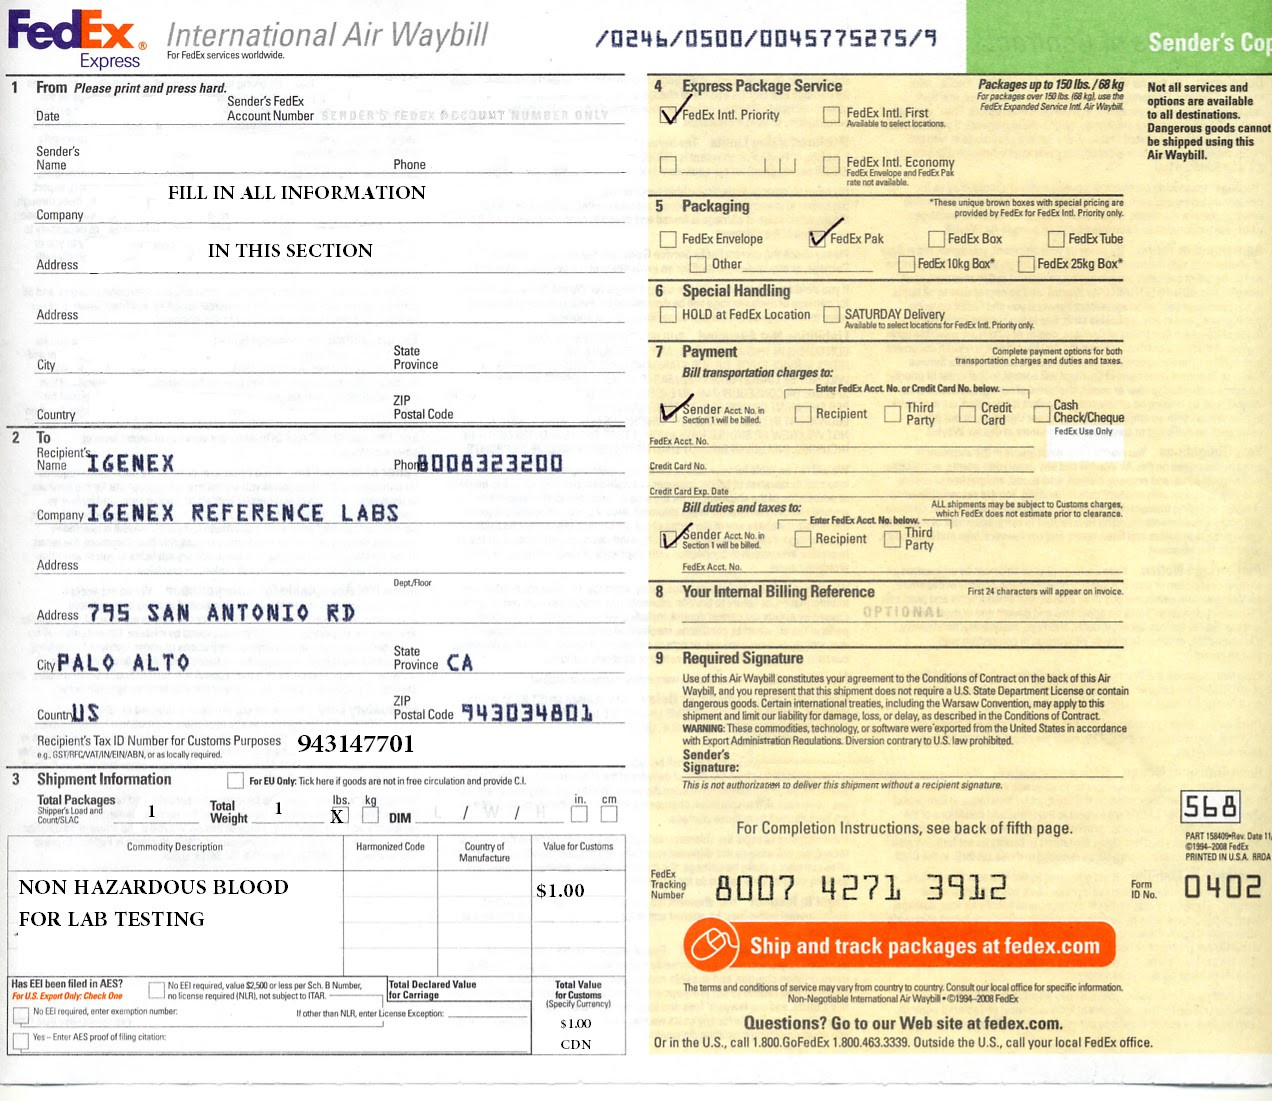 Fedex International Air Waybill Form Download